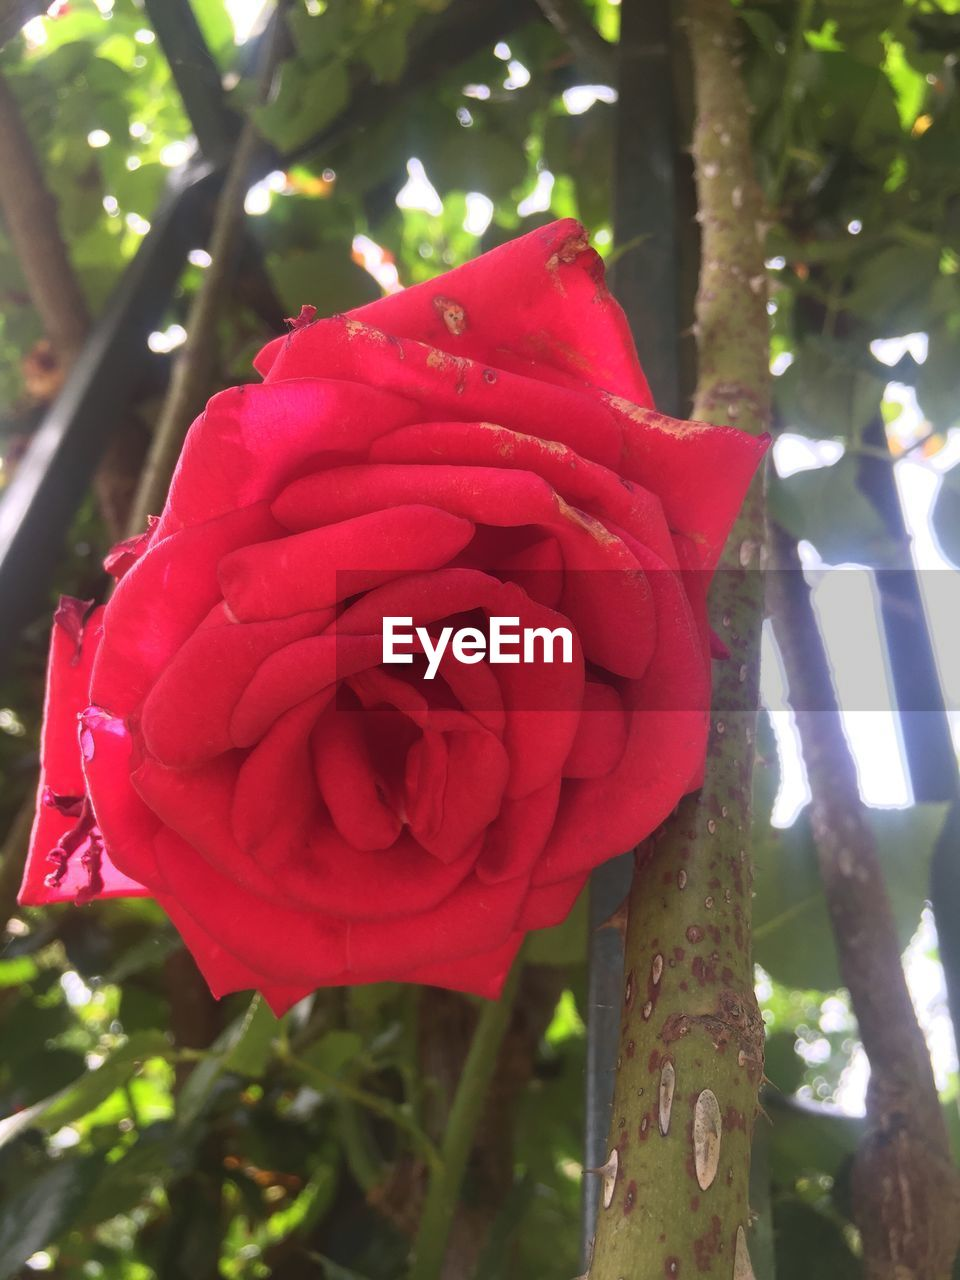 red, flower, beauty in nature, nature, growth, petal, fragility, rose - flower, no people, day, outdoors, freshness, tree, focus on foreground, flower head, close-up, plant, blooming